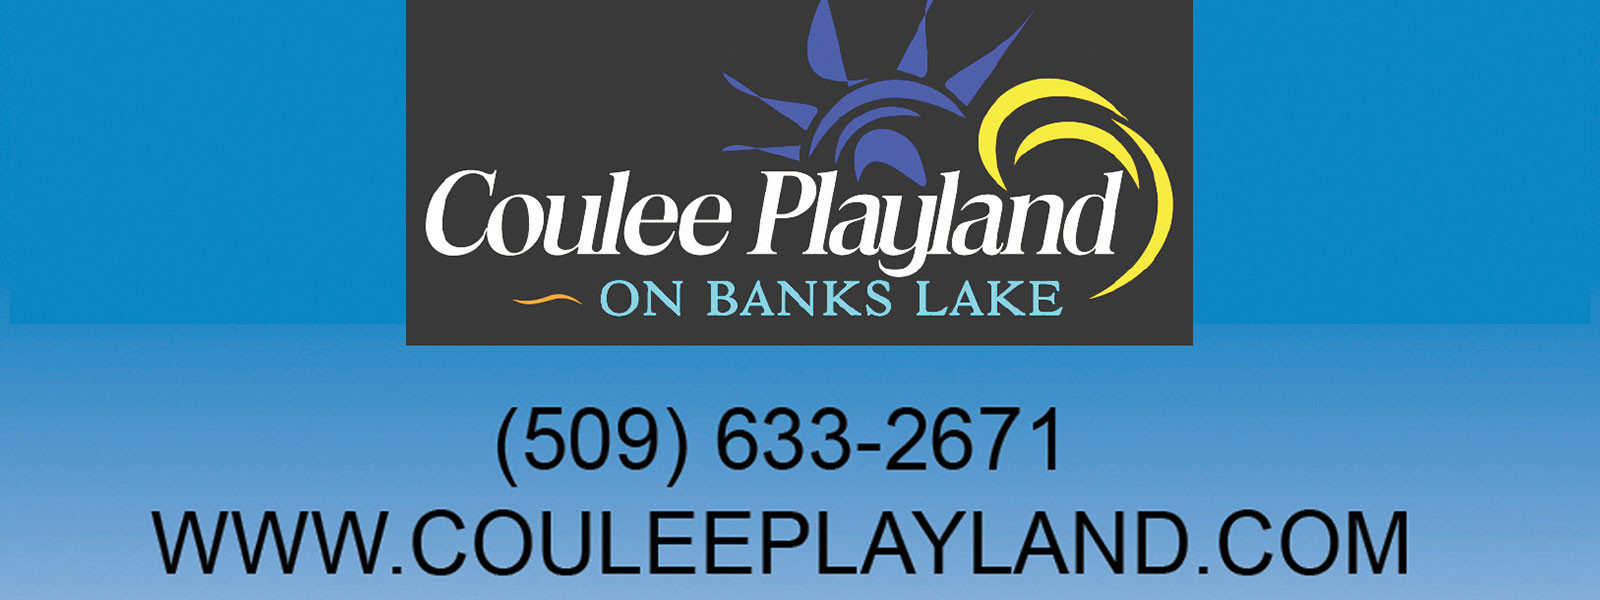 Coulee Playland